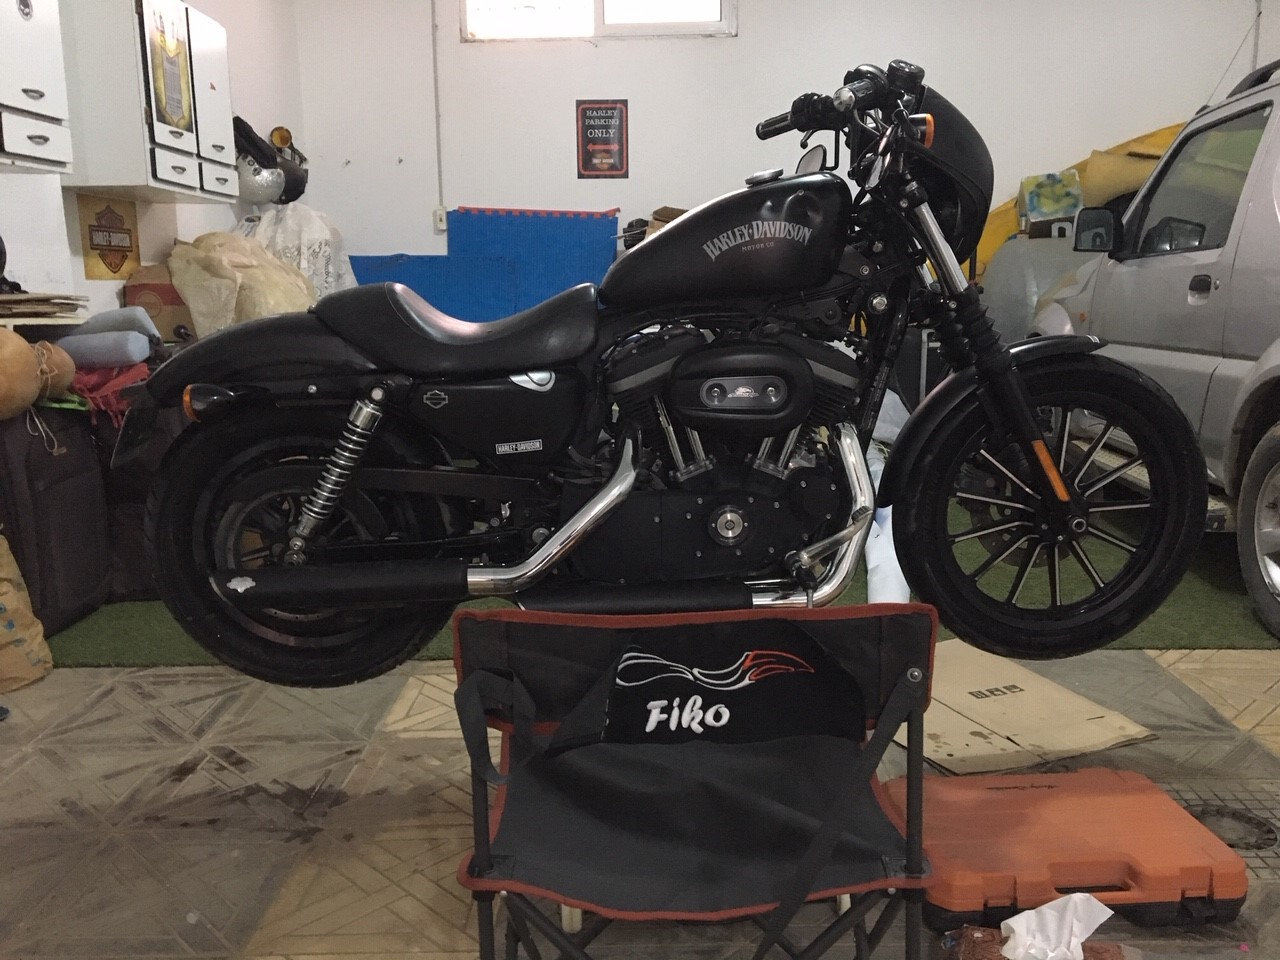 nouvelle acquisition Iron 883 V47m